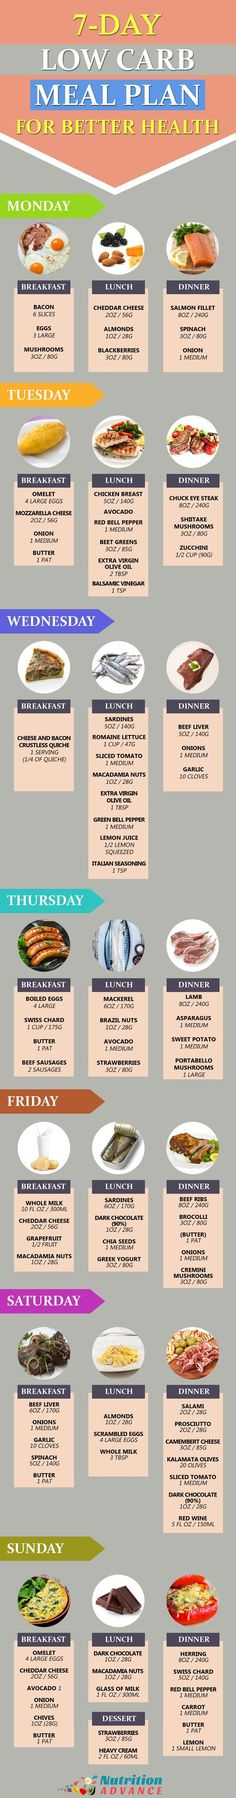 A 7-day Low Carb Meal Plan For Better Health | This 7-day meal plan is low in carbs and so it is suitable for both LCHF and keto diets. The meal plan is designed to provide an optimal nutrient intake of vitamins and minerals, while optimizing the omega-6 to omega-3 ratio at approximately 2:1 over the week. If you want a simple roadmap to fast weight loss success, you've come to the right place. Whether you want to lose 10 pounds in 2 weeks or 2 months, the basic principles of weight loss…